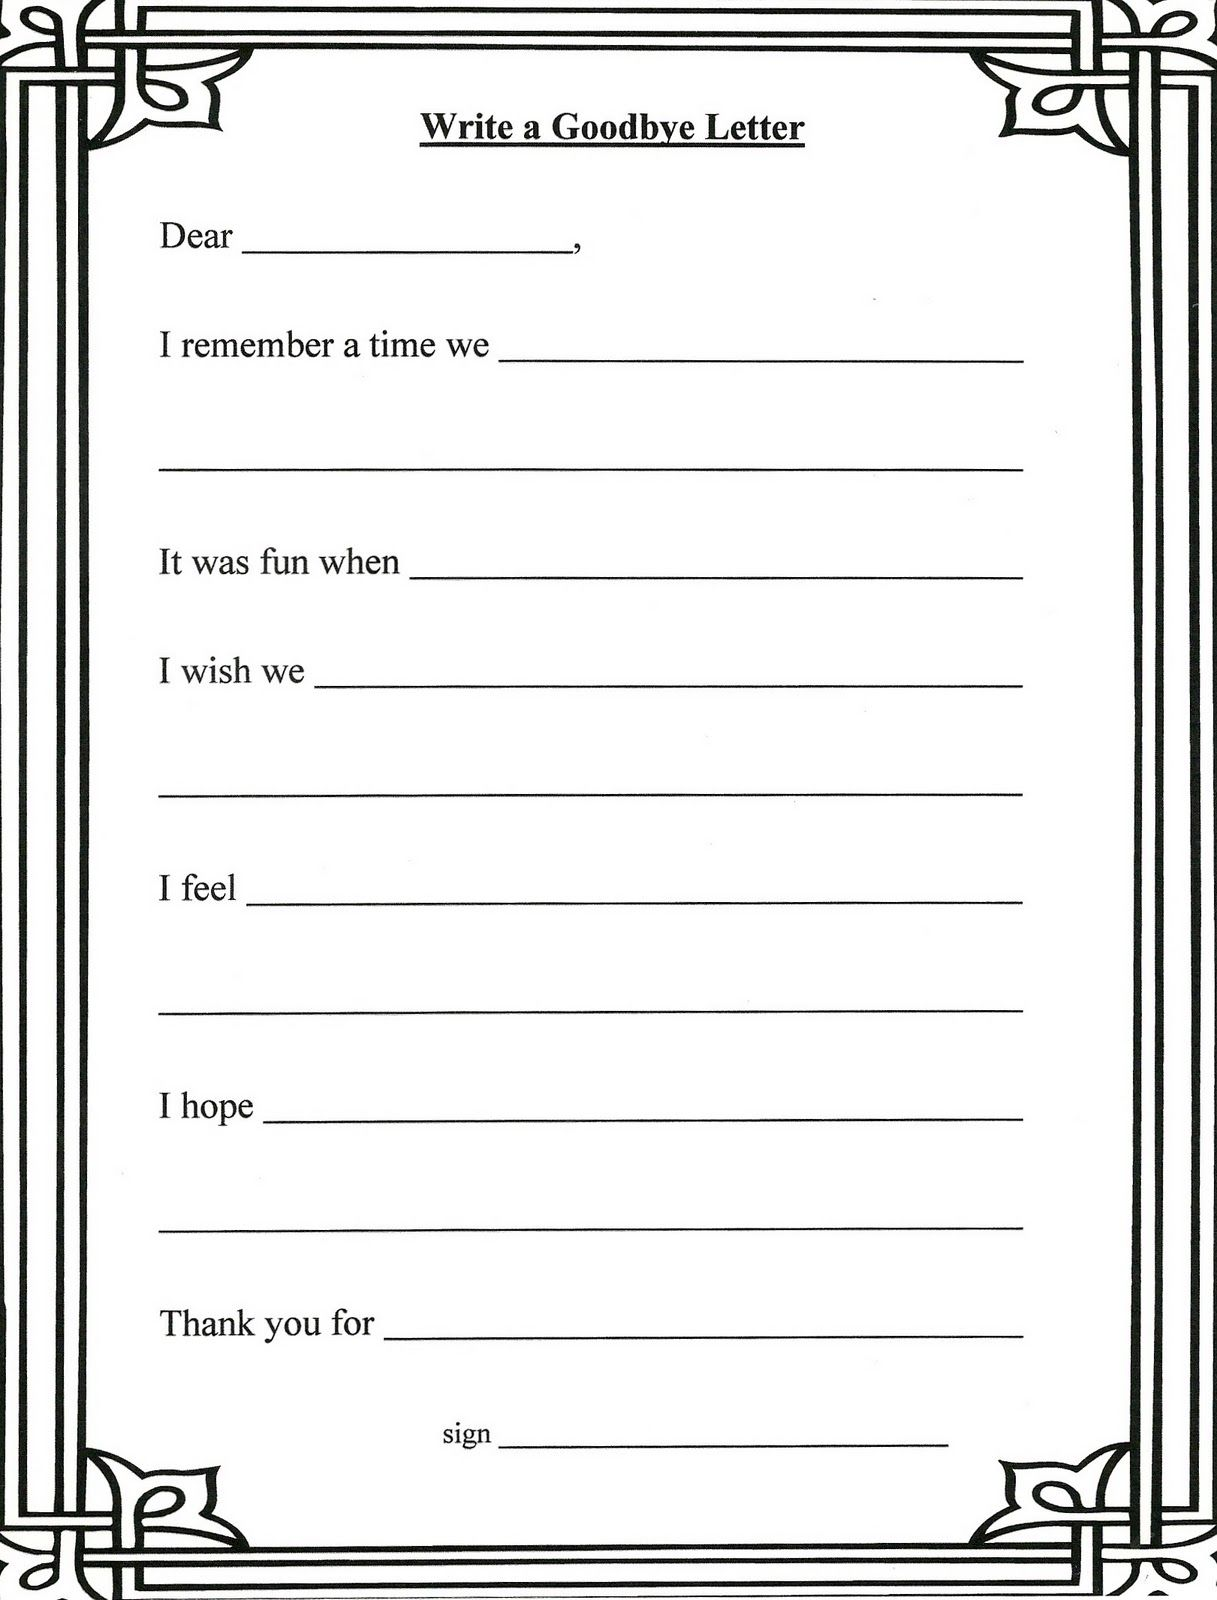 Printables Grief Worksheets 1000 images about counseling grief on pinterest maker game healing heart and counseling